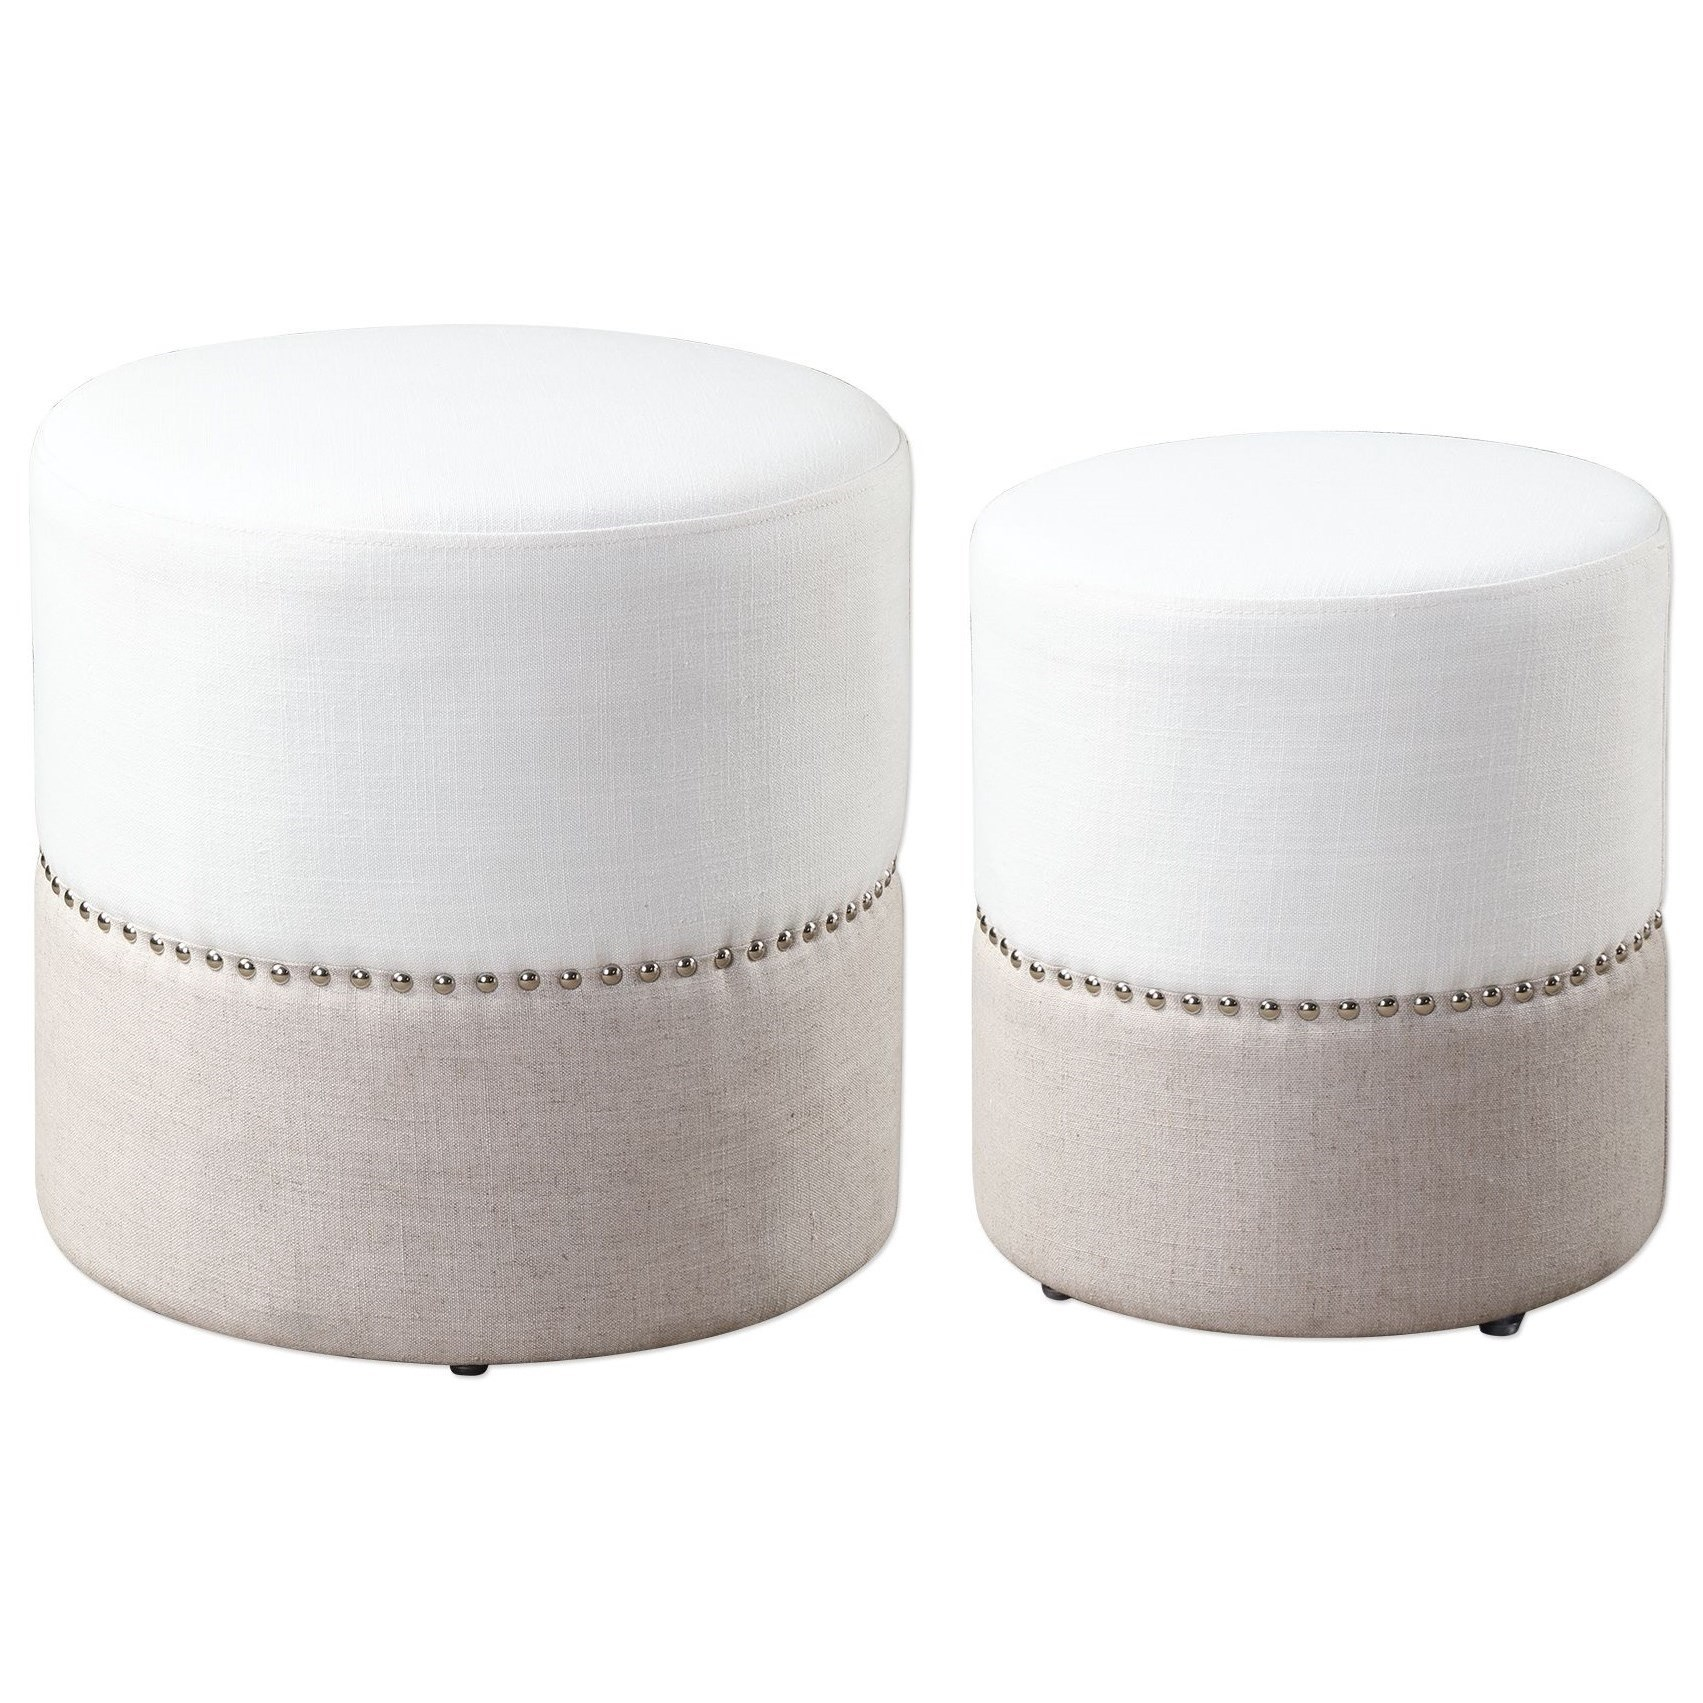 Accent Furniture - Ottomans Tilda Two-Toned Nesting Ottomans by Uttermost at Lucas Furniture & Mattress